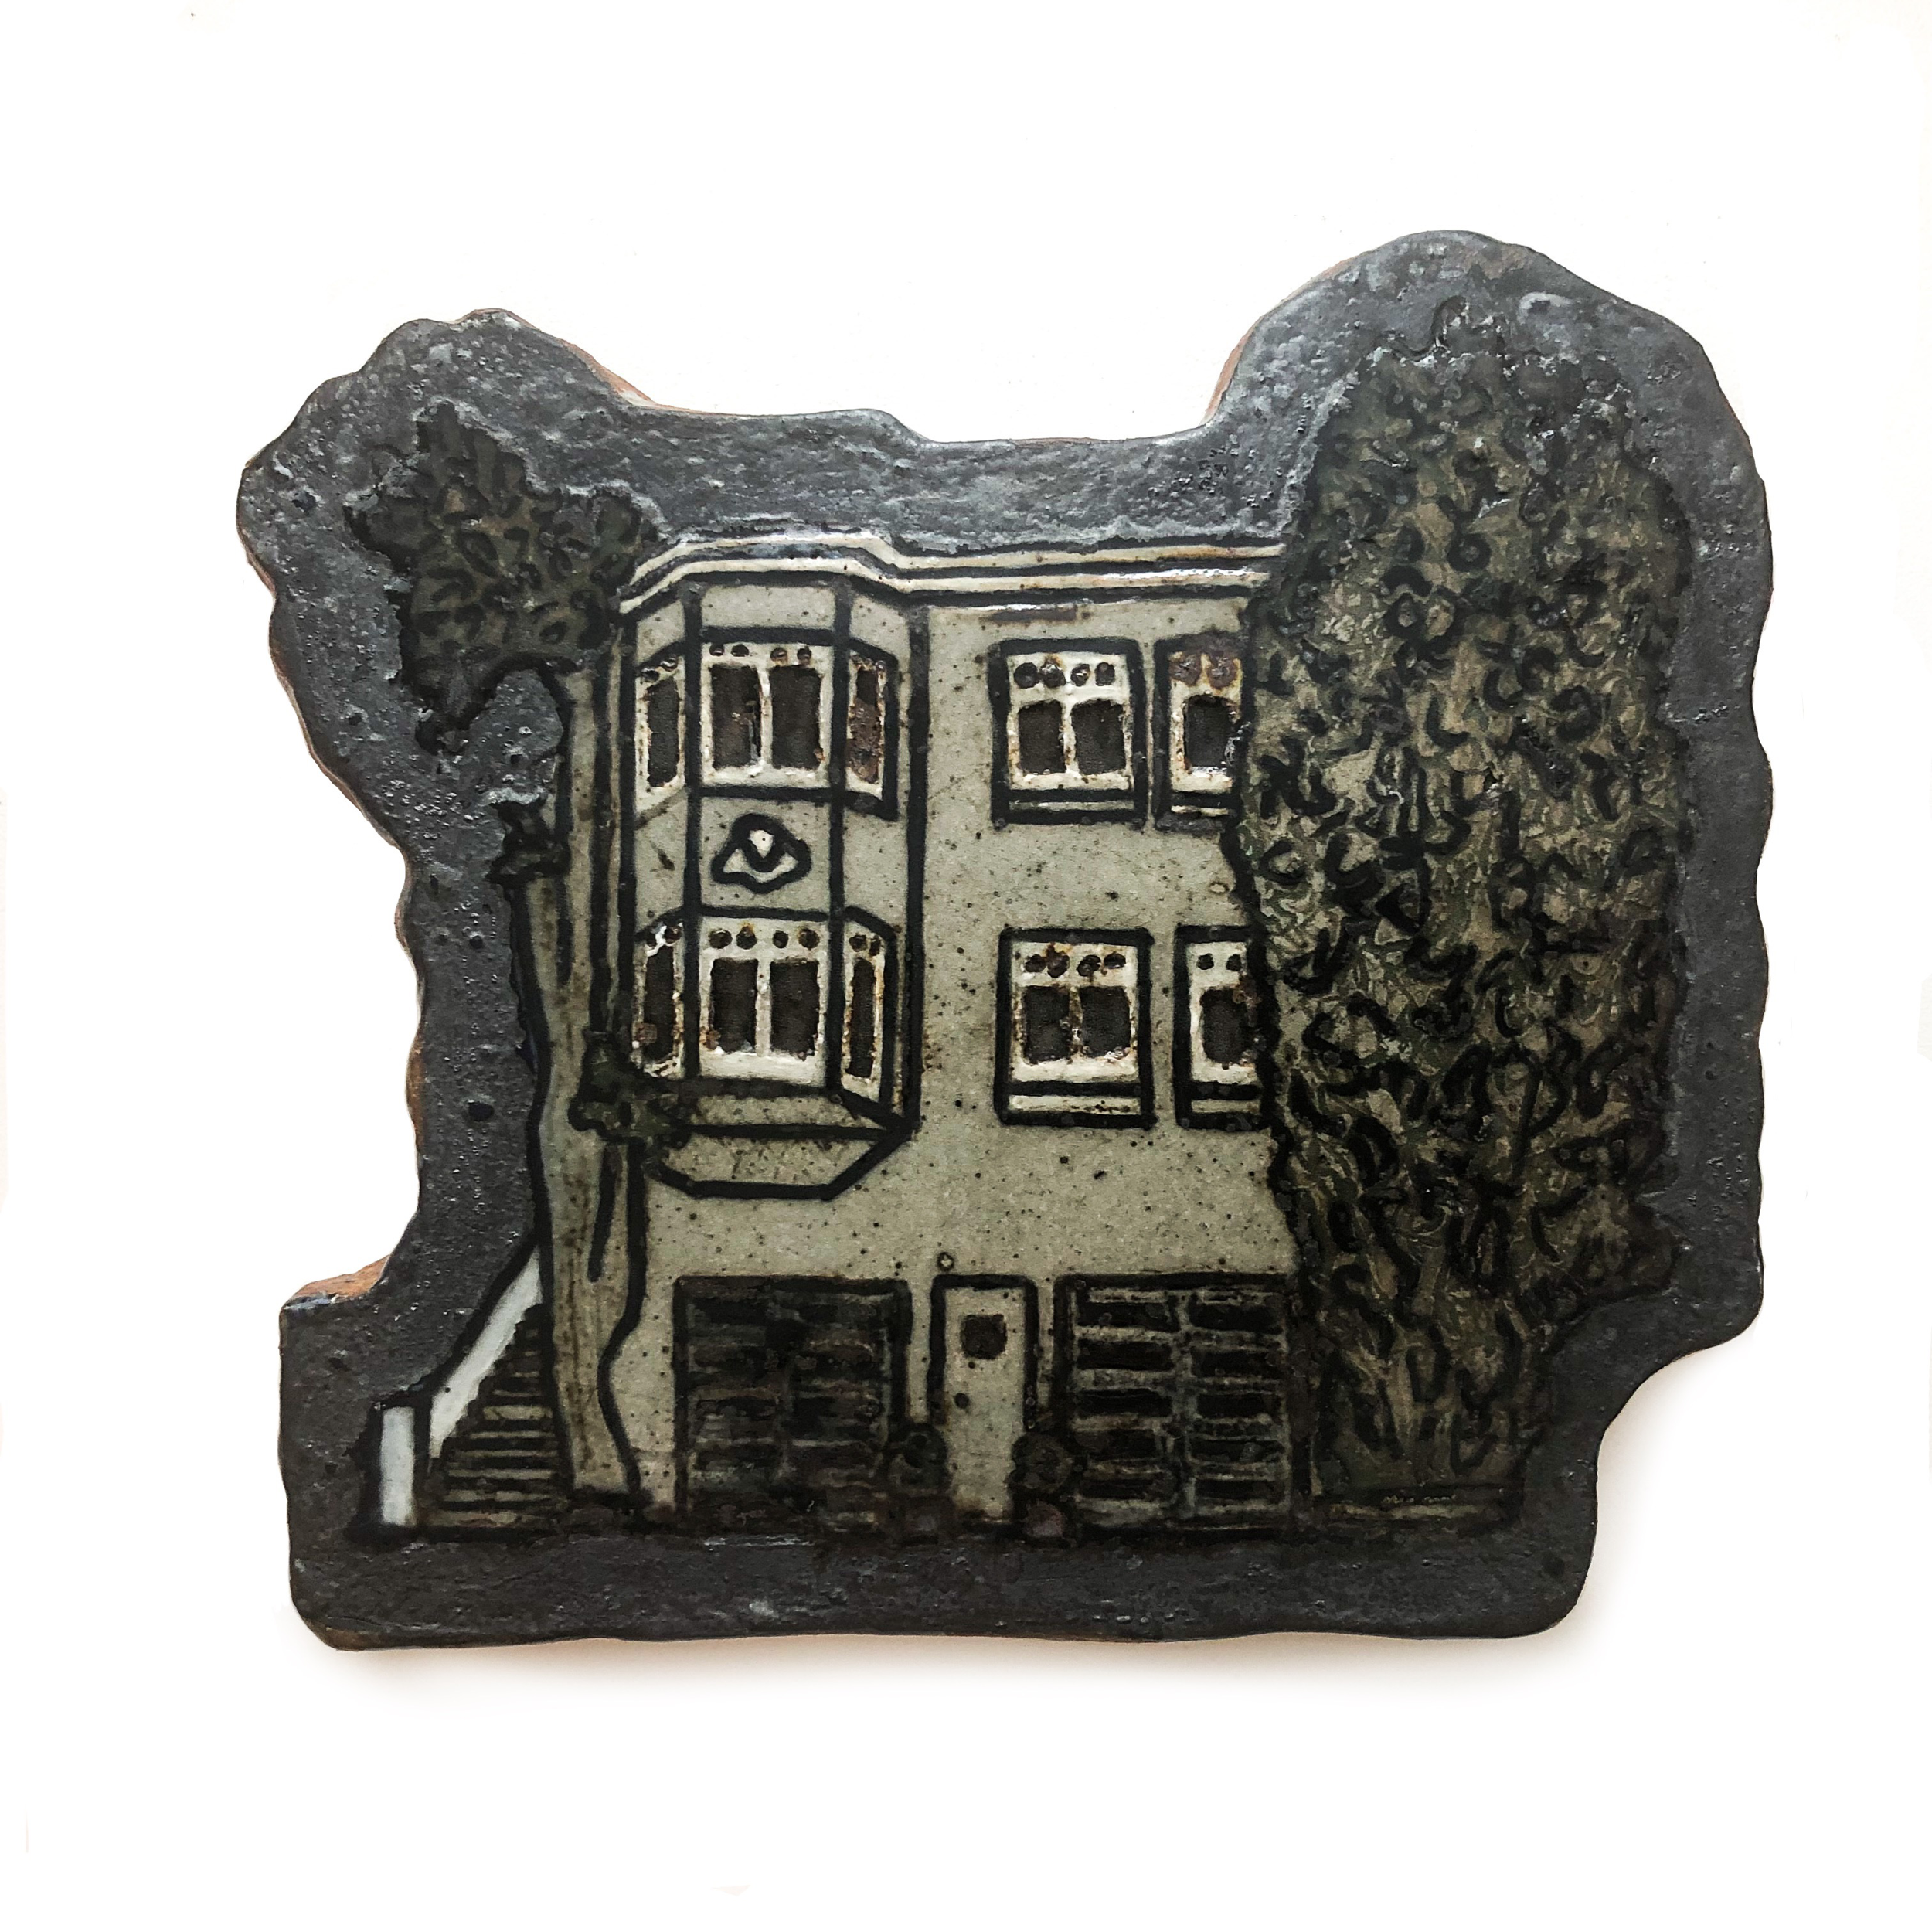 jordan_kushins_ceramic_house4.png